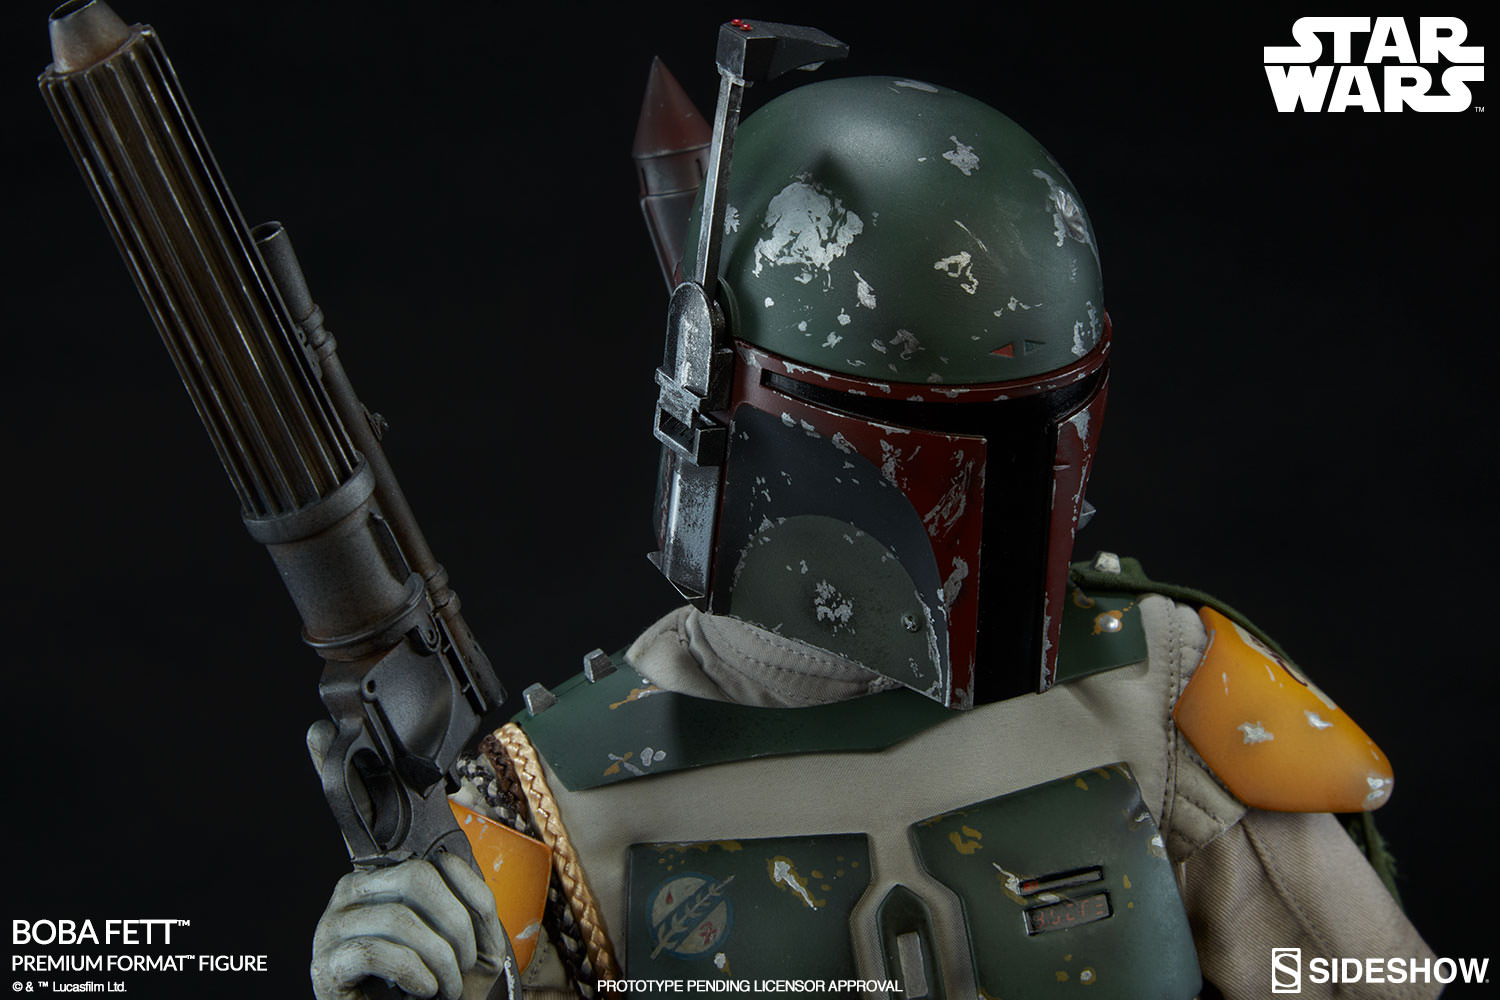 [Pre-Order] Return of the Jedi - Boba Fett Premium Format